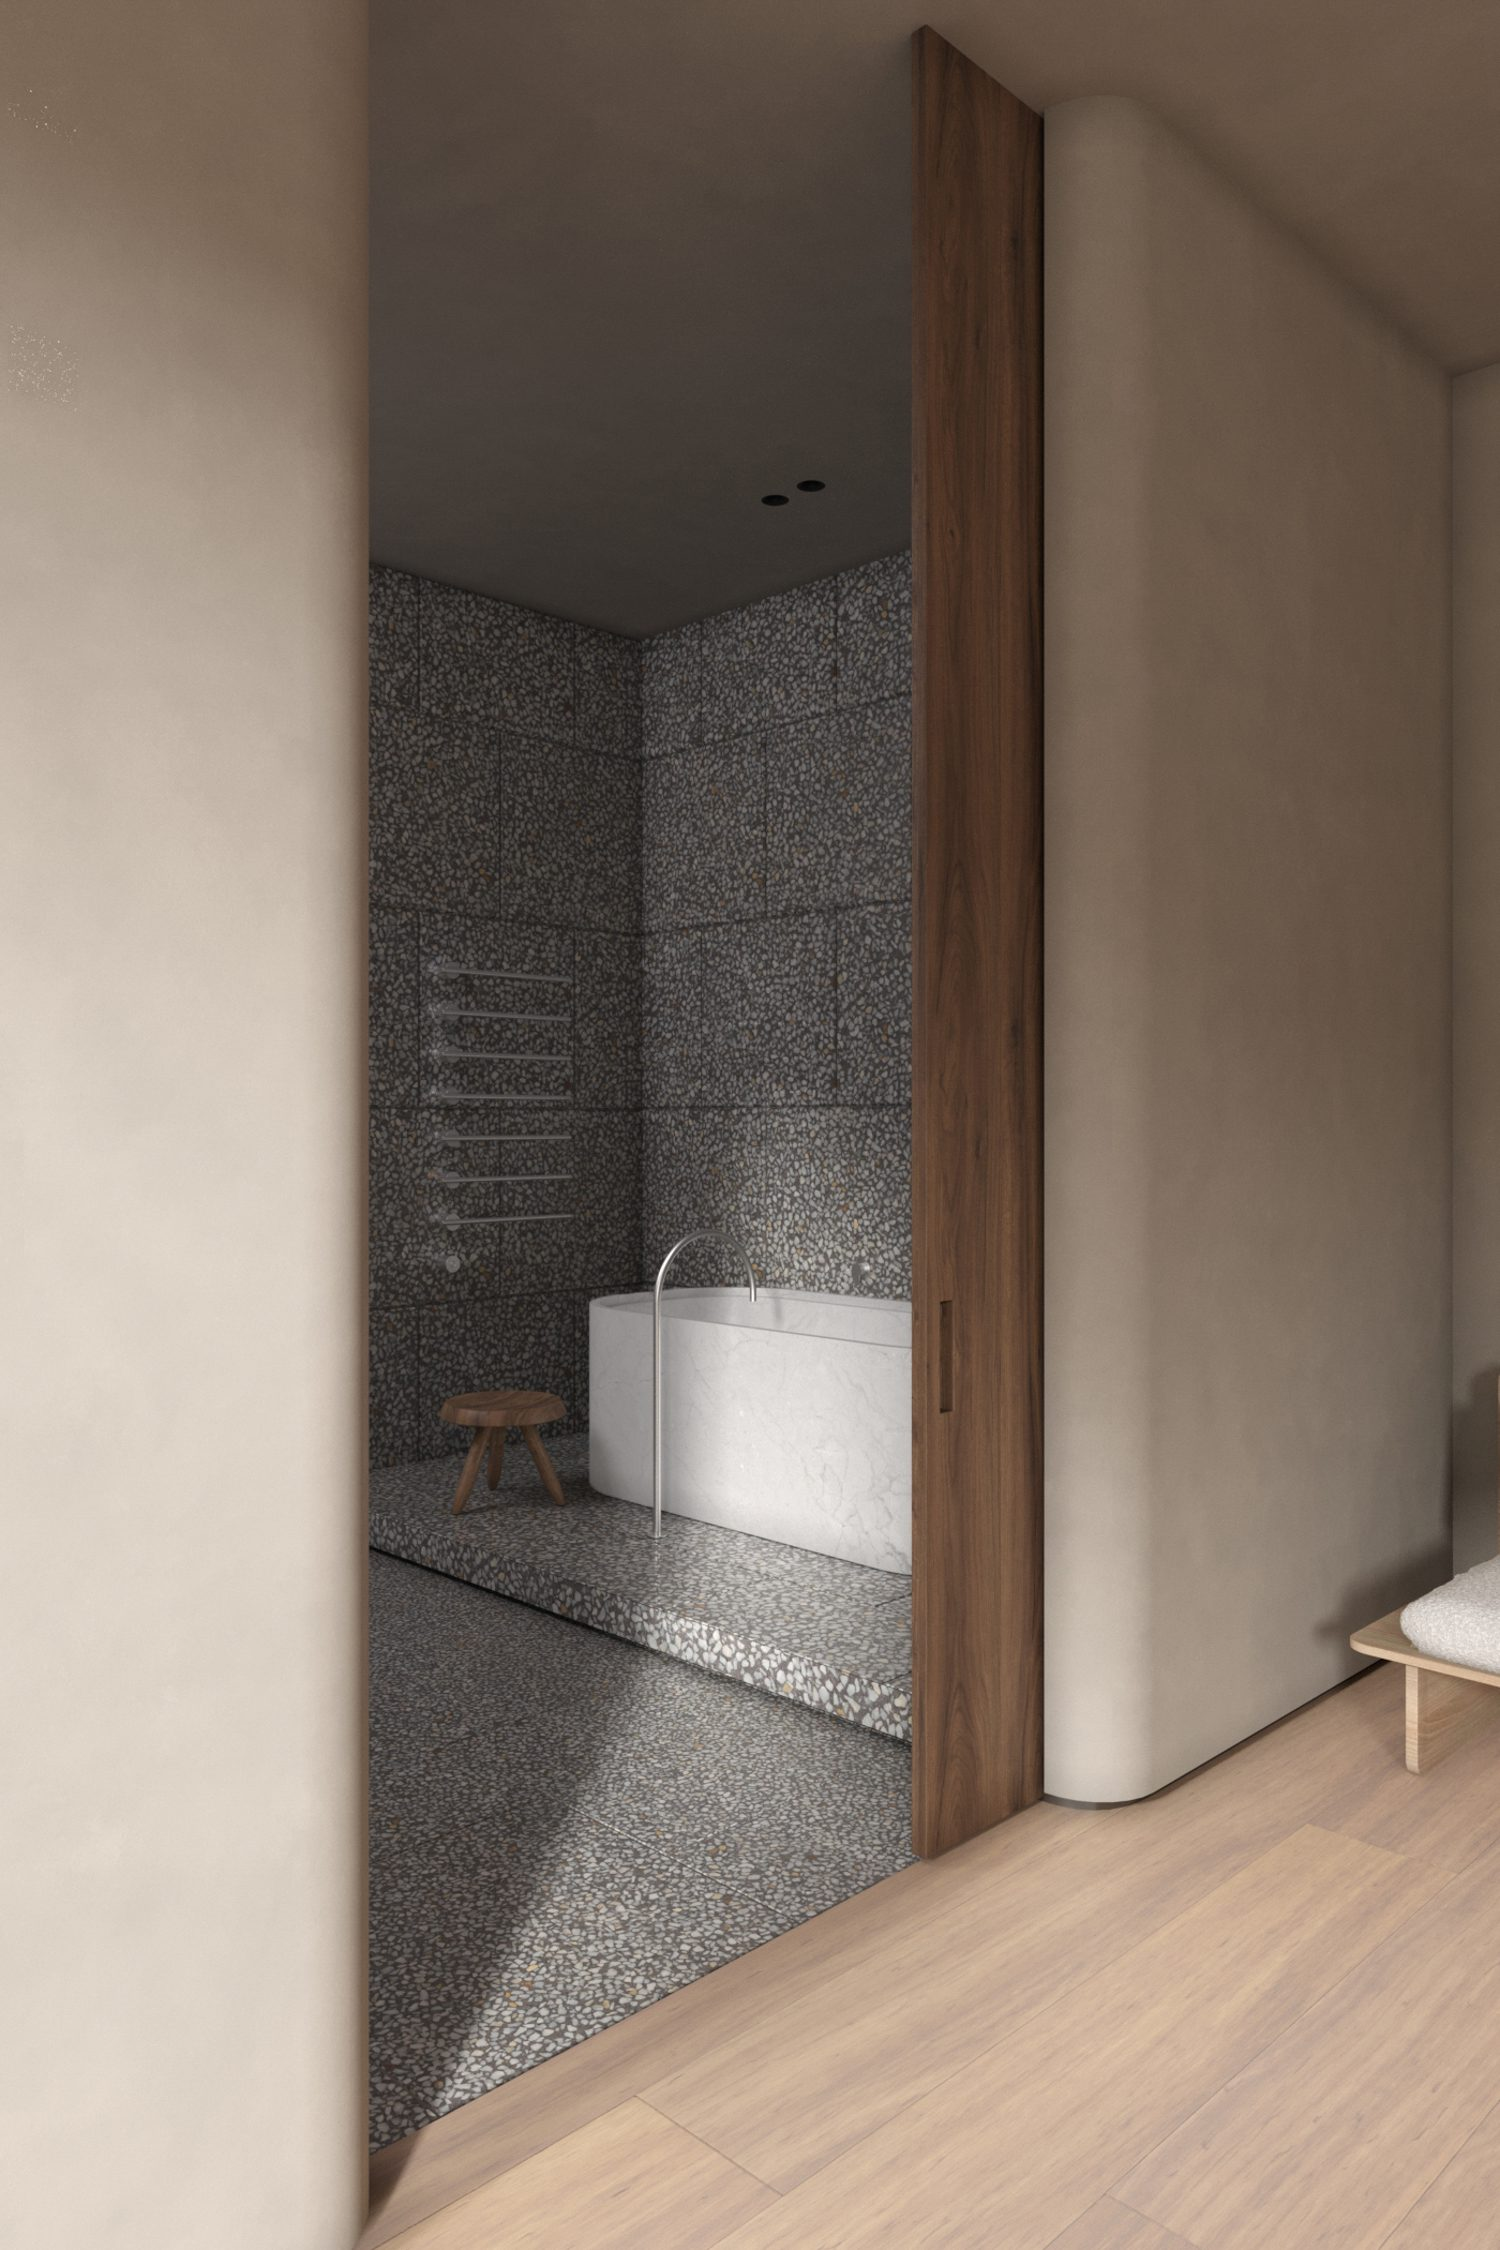 Piet Boon's mixers for Cocoon activate a custom marble tub in a bathroom.